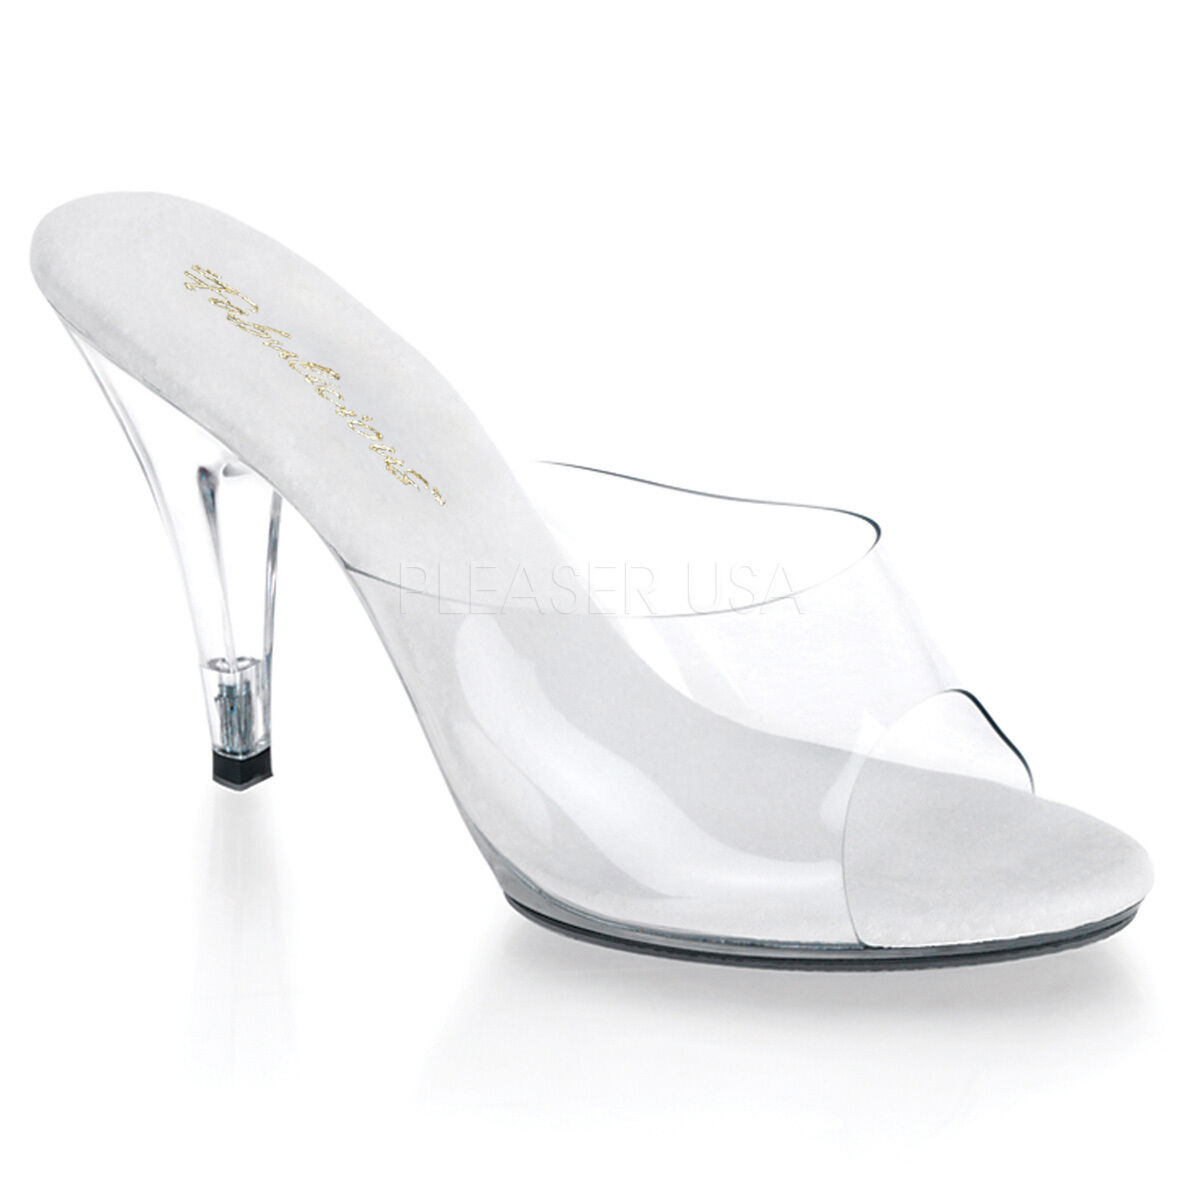 Fabulicious Caress-401 Clear Transparent Slippers Stiletto Heel Sandales